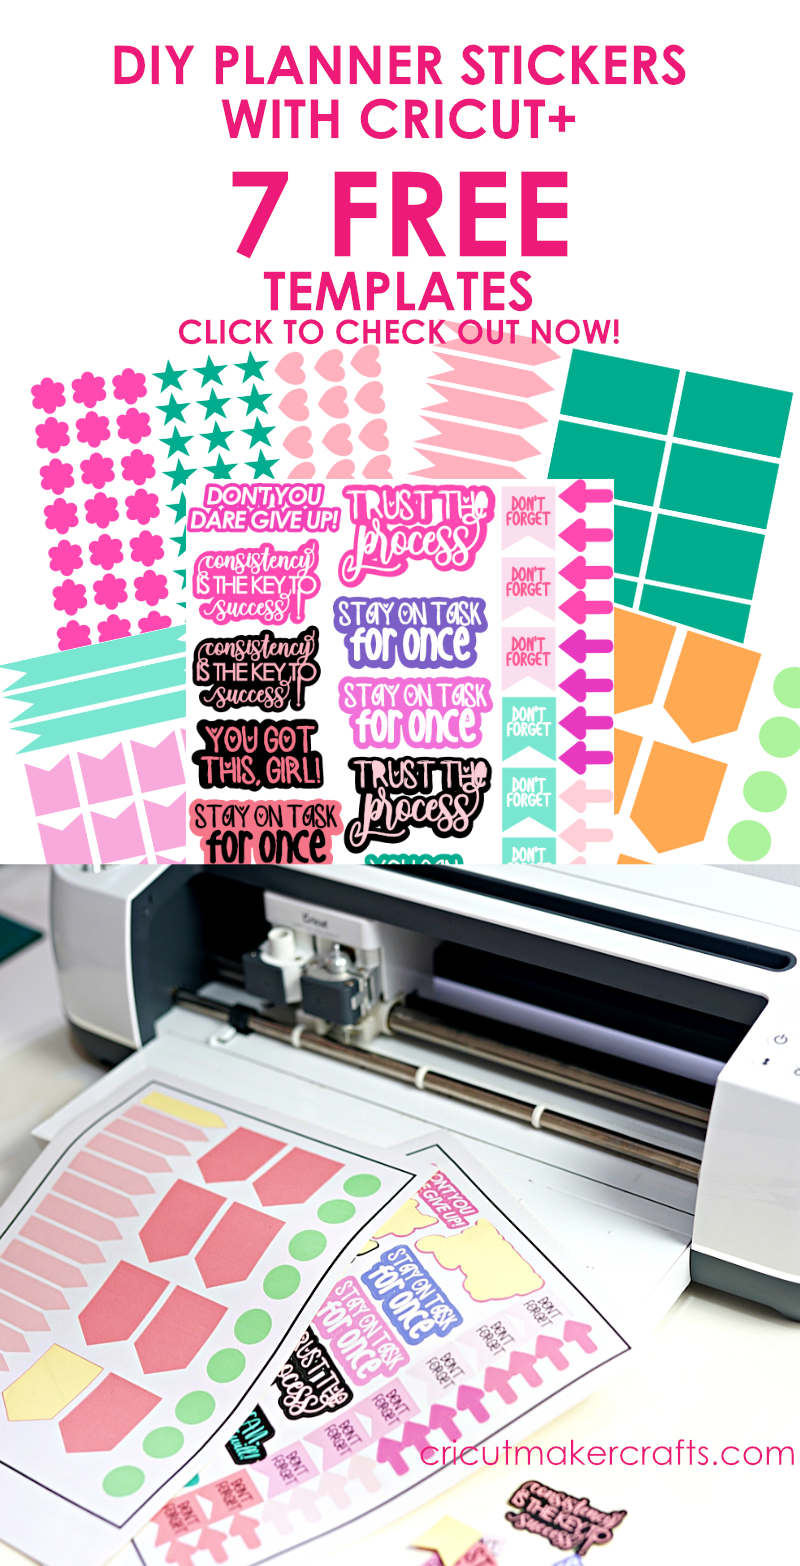 Free planner sticker templates to use with Cricut, Cricut maker and planner stickers printed and cut using Cricut